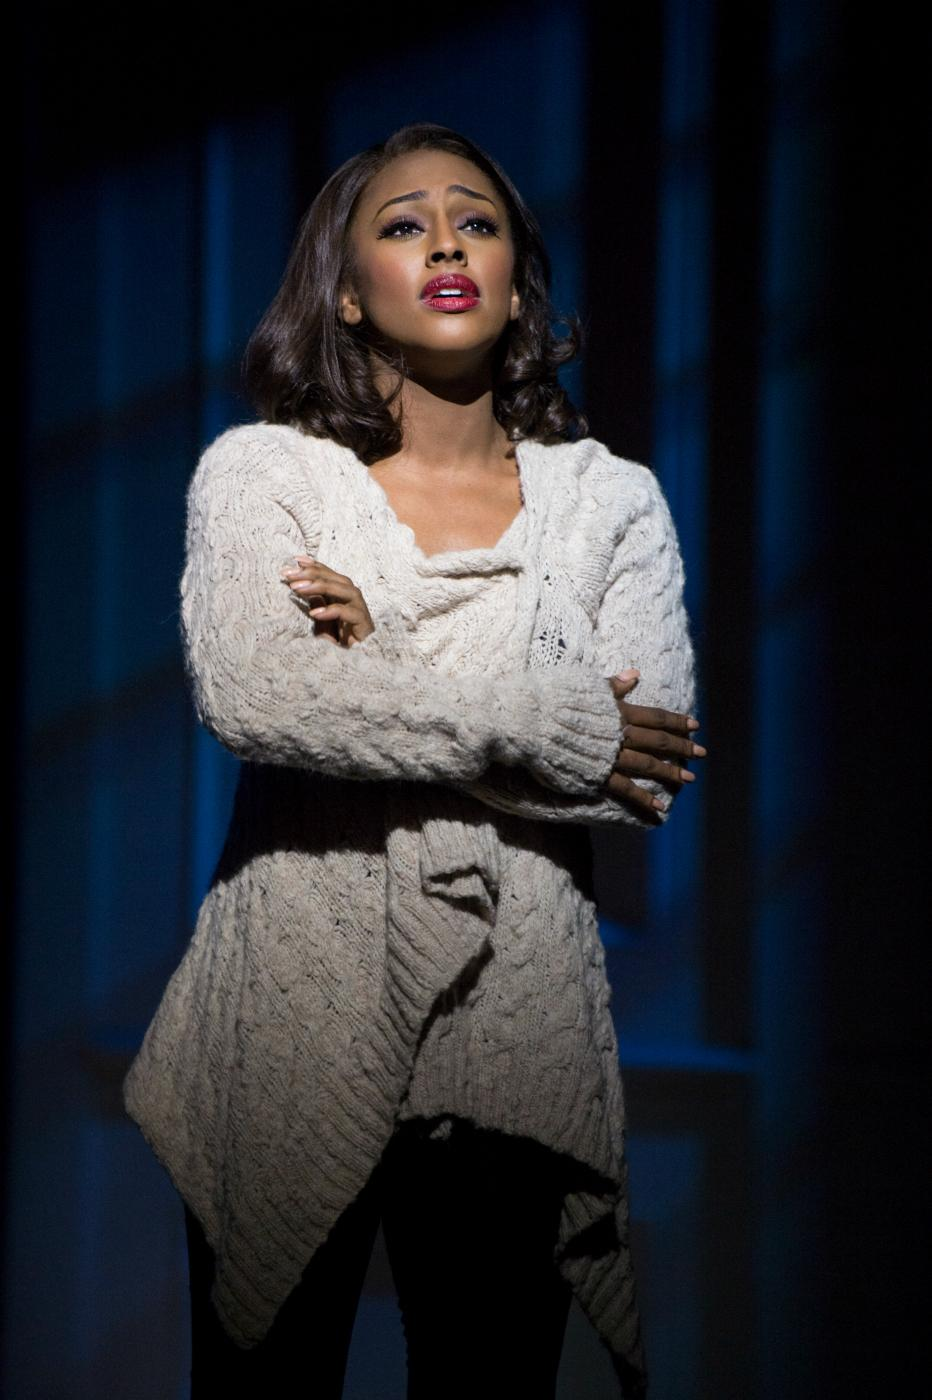 """RT @TheBodyguardUK: """"My favourite song is I Have Nothing."""" - @alexandramusic. Read more with @heraldnewslive: http://t.co/dv0dWaiVKD http:/…"""